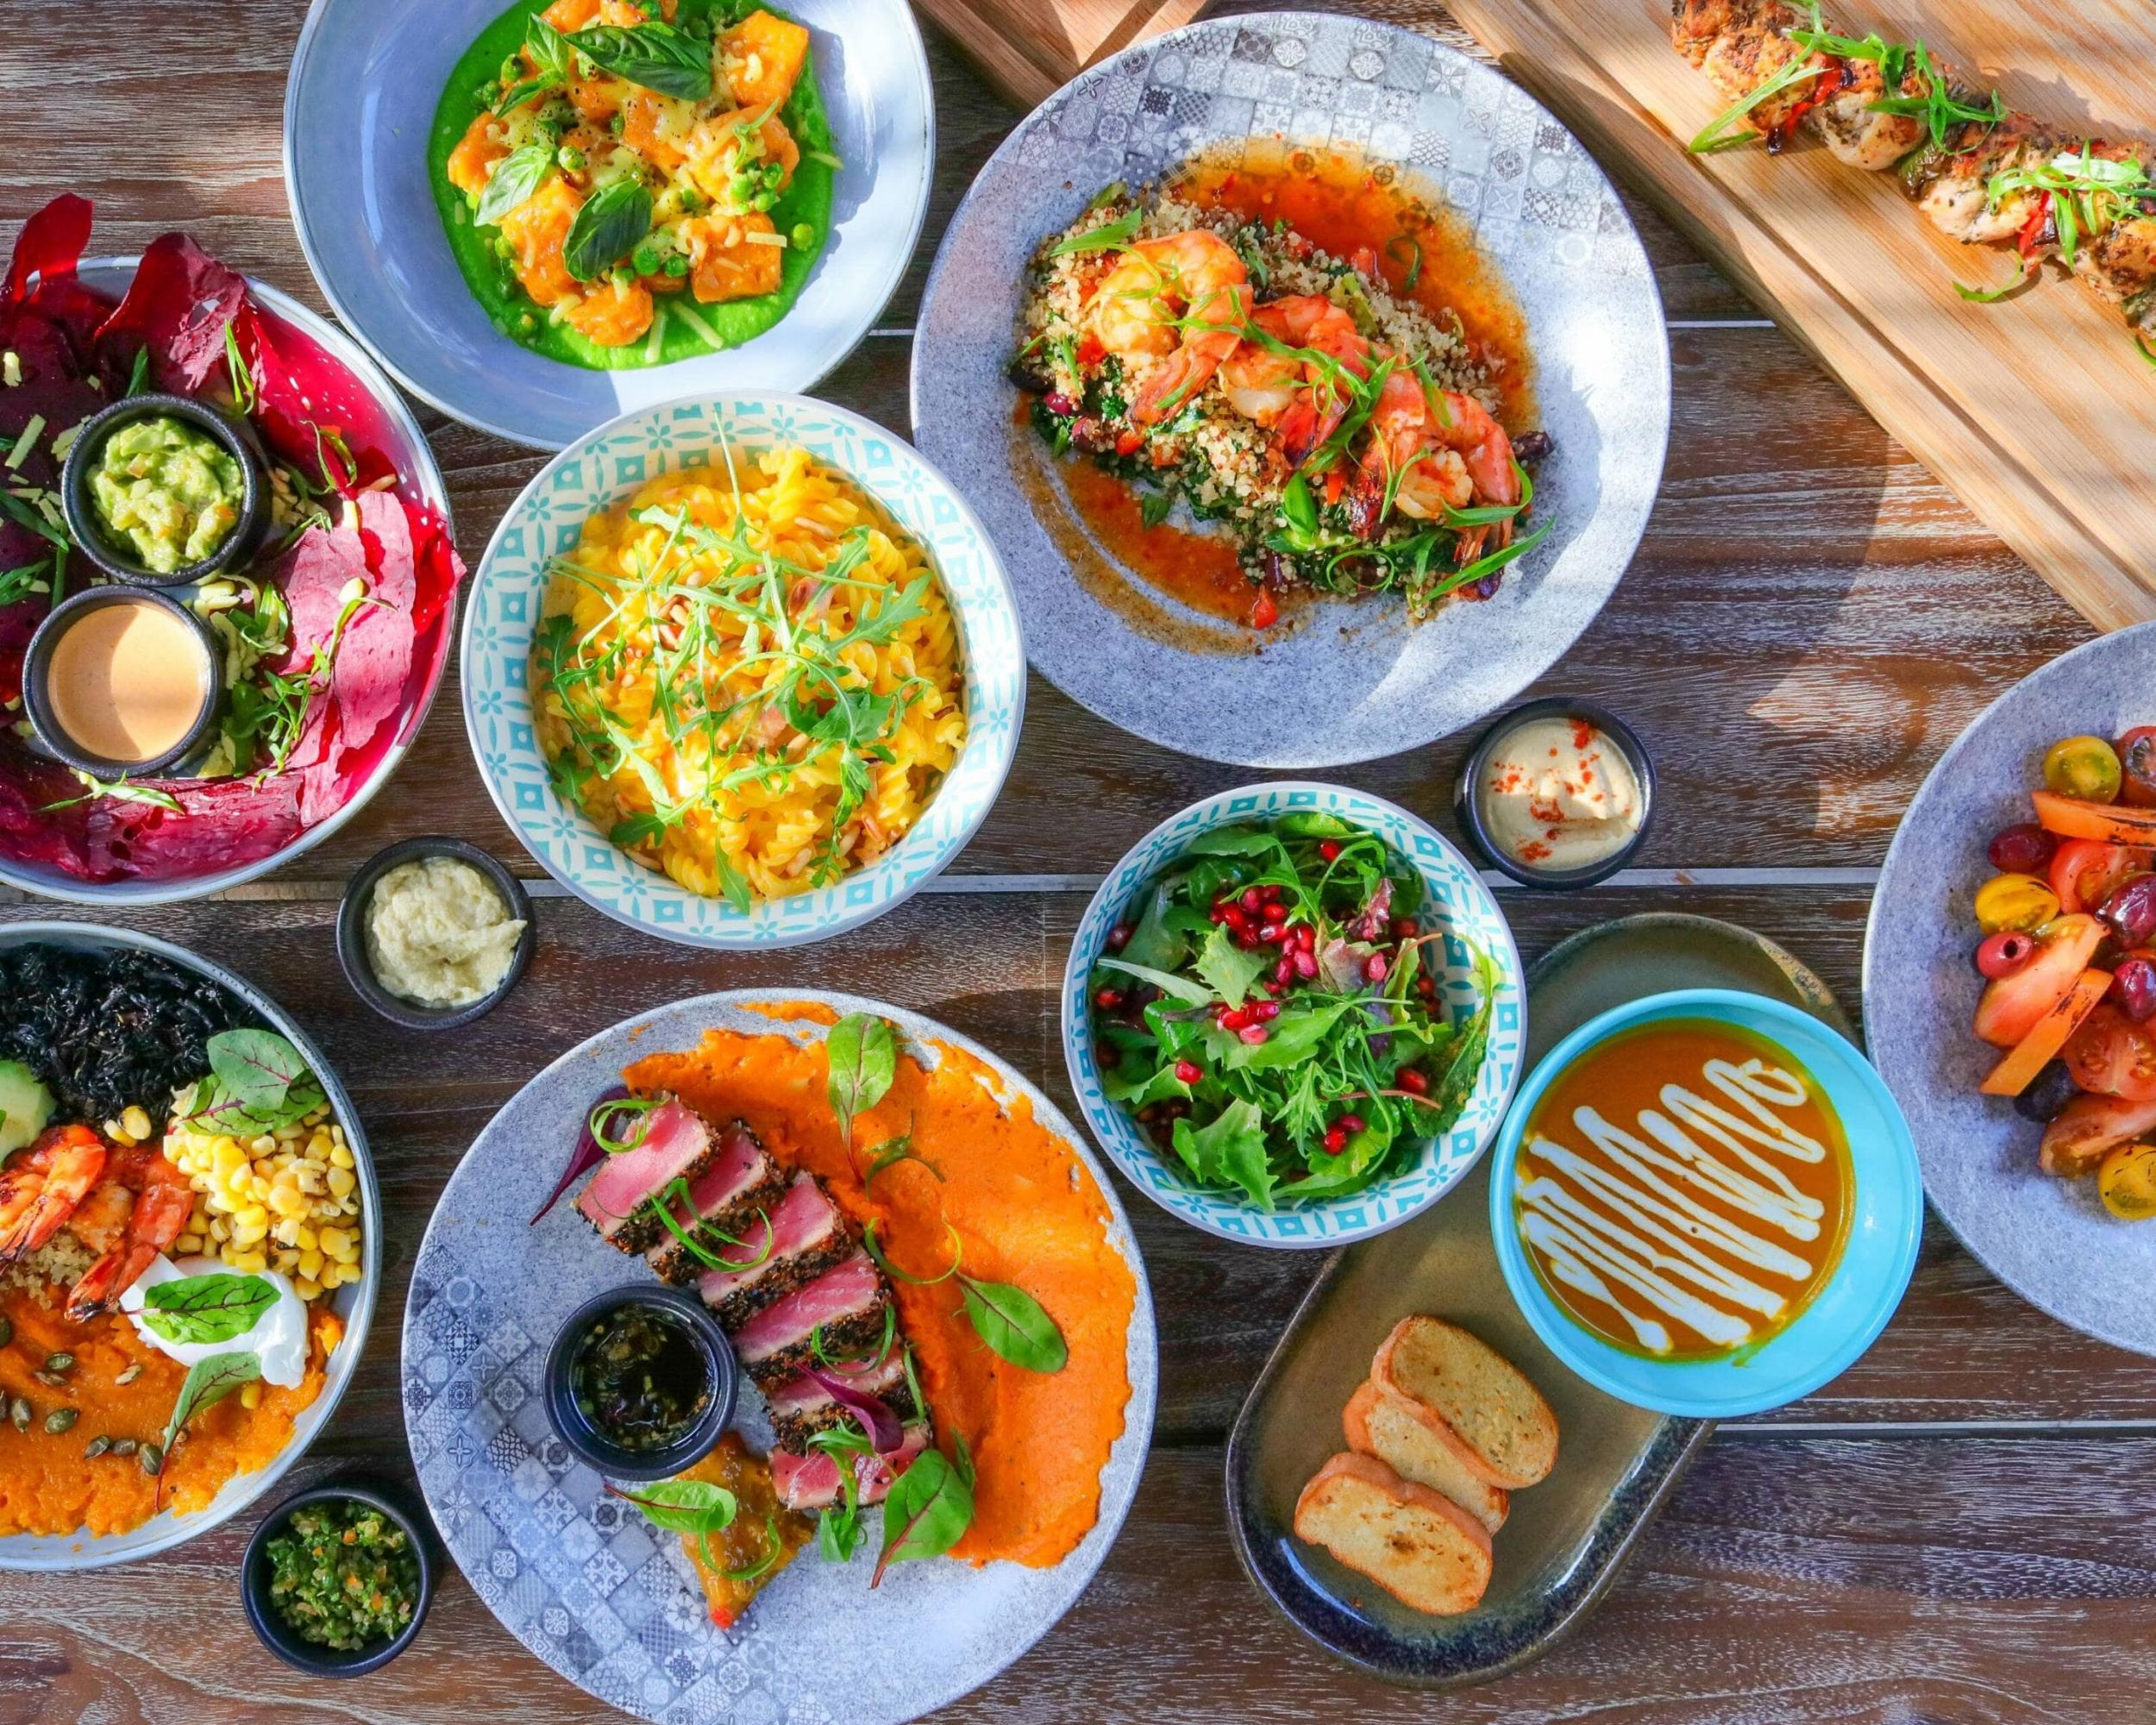 Top 15 Vegan-Friendly Restaurants in Dubai